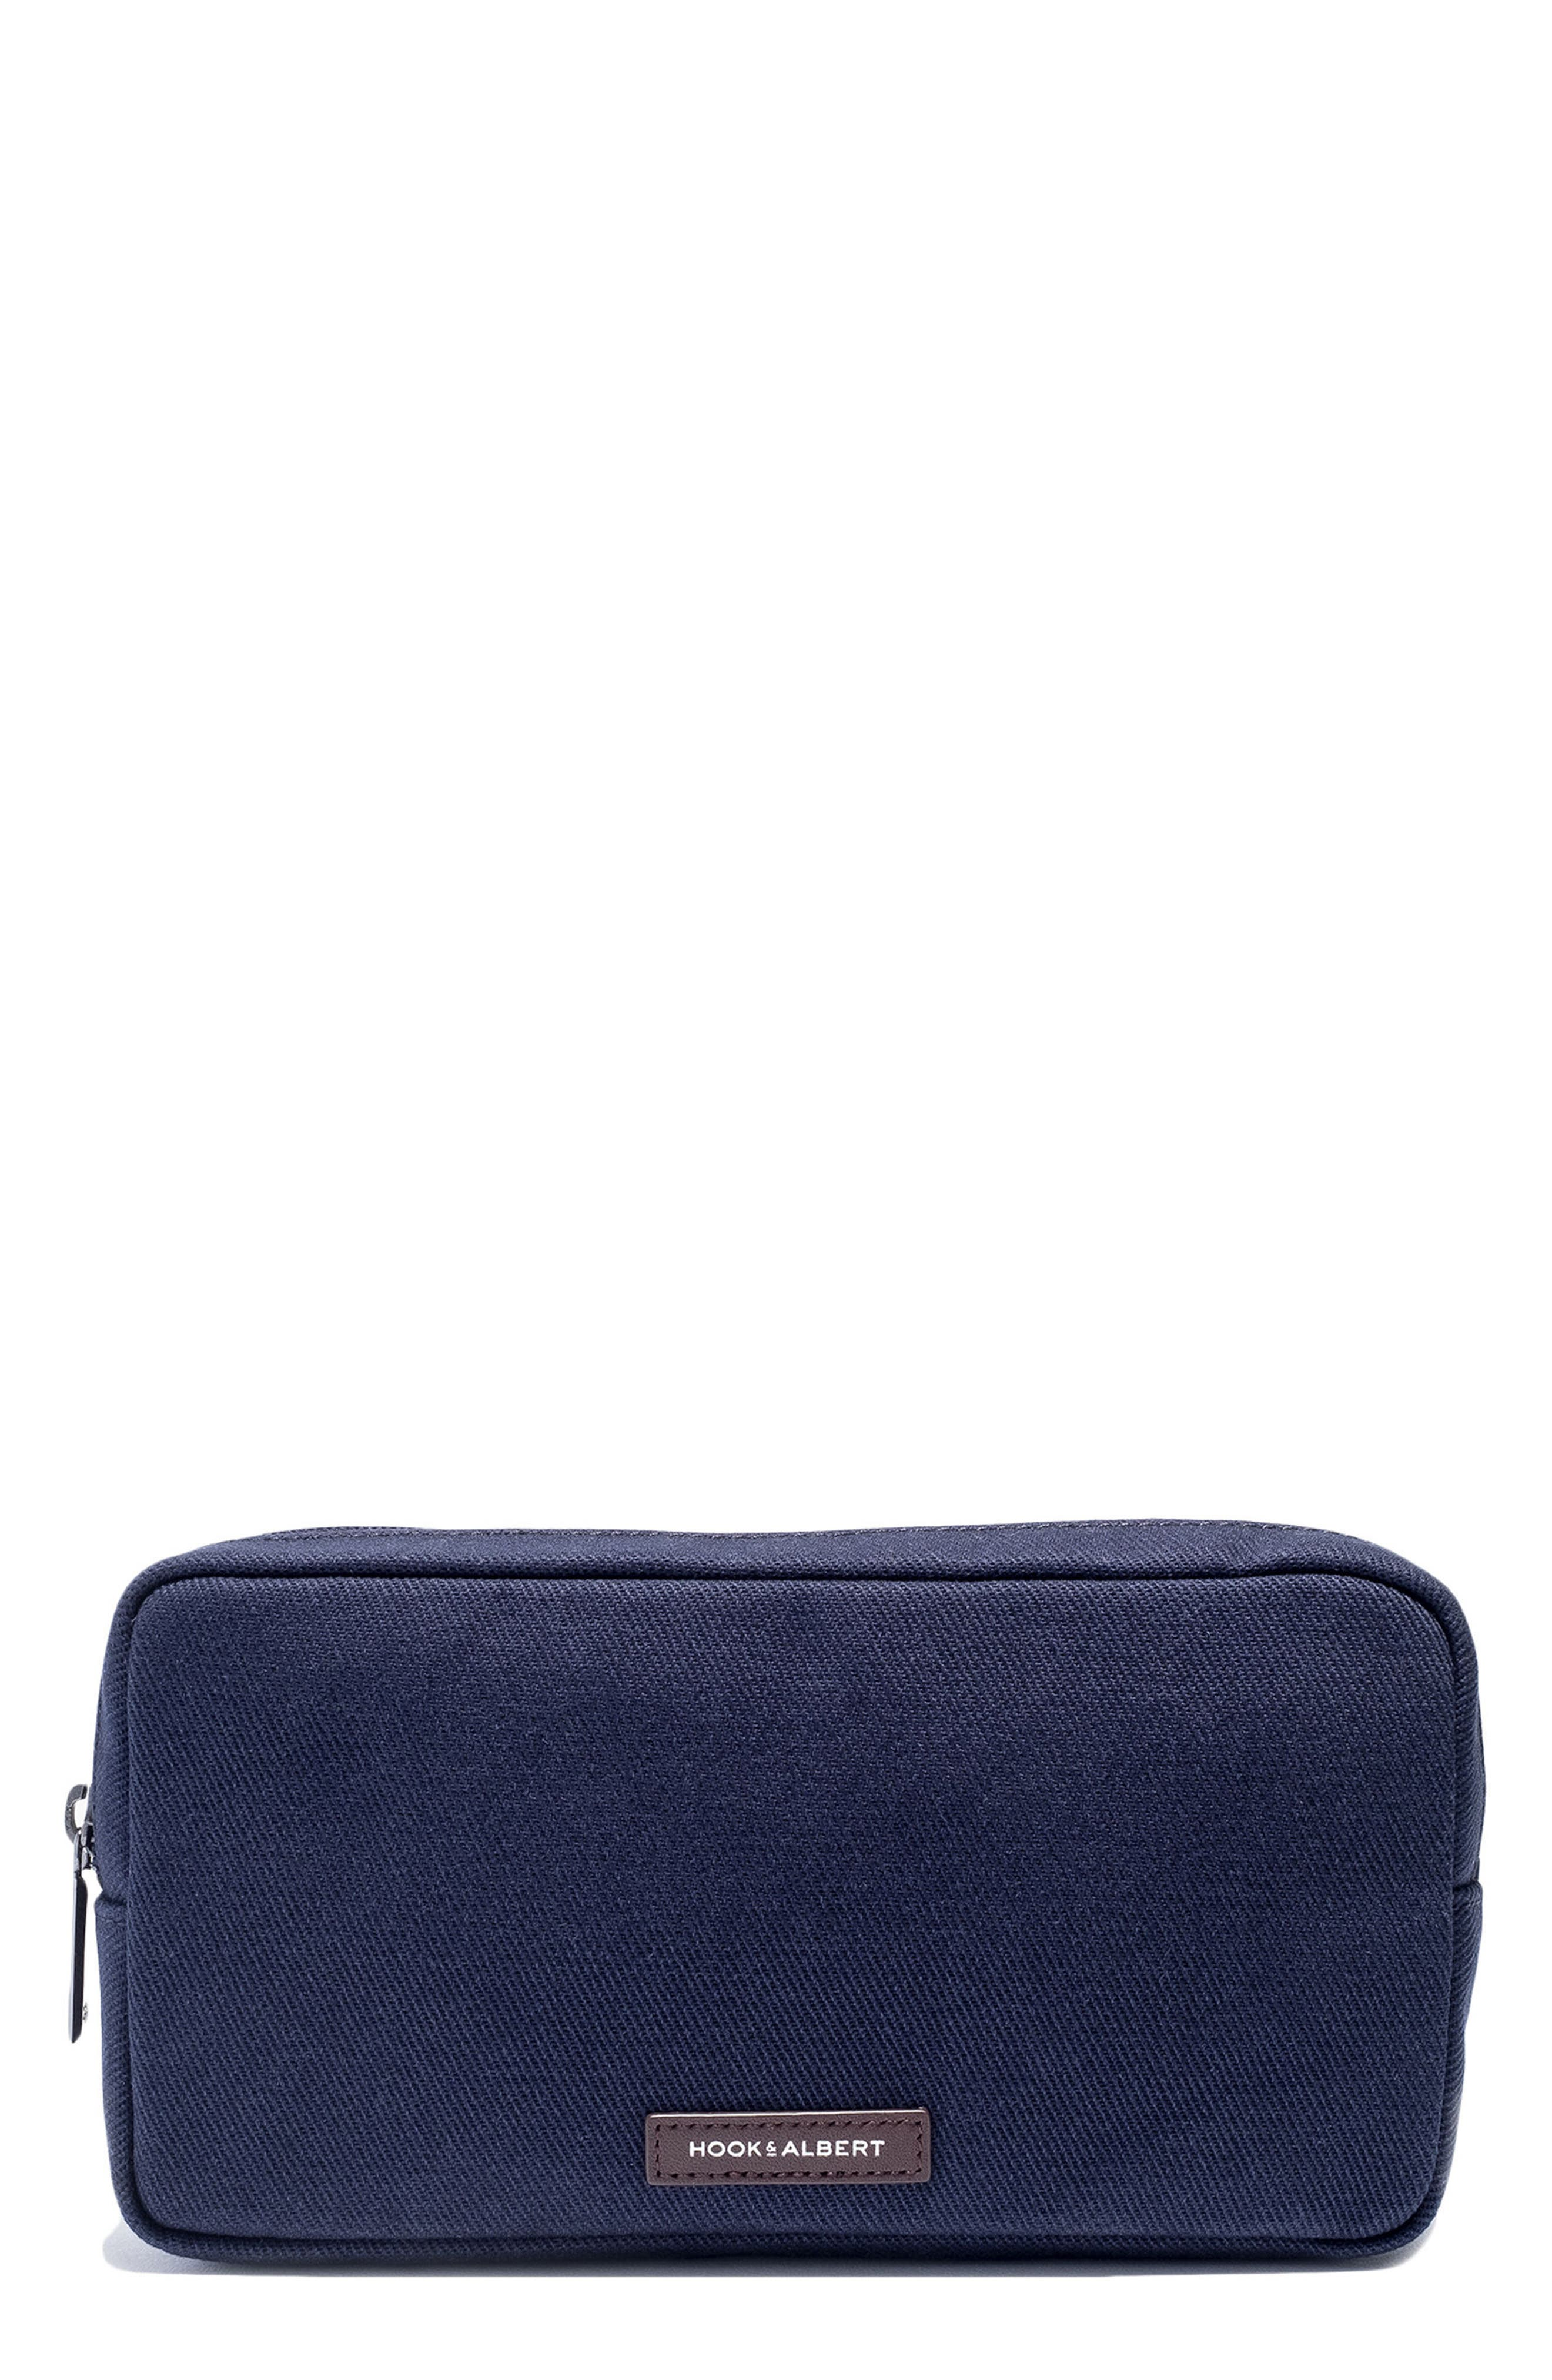 Hideaway Dopp Kit,                             Main thumbnail 1, color,                             NAVY